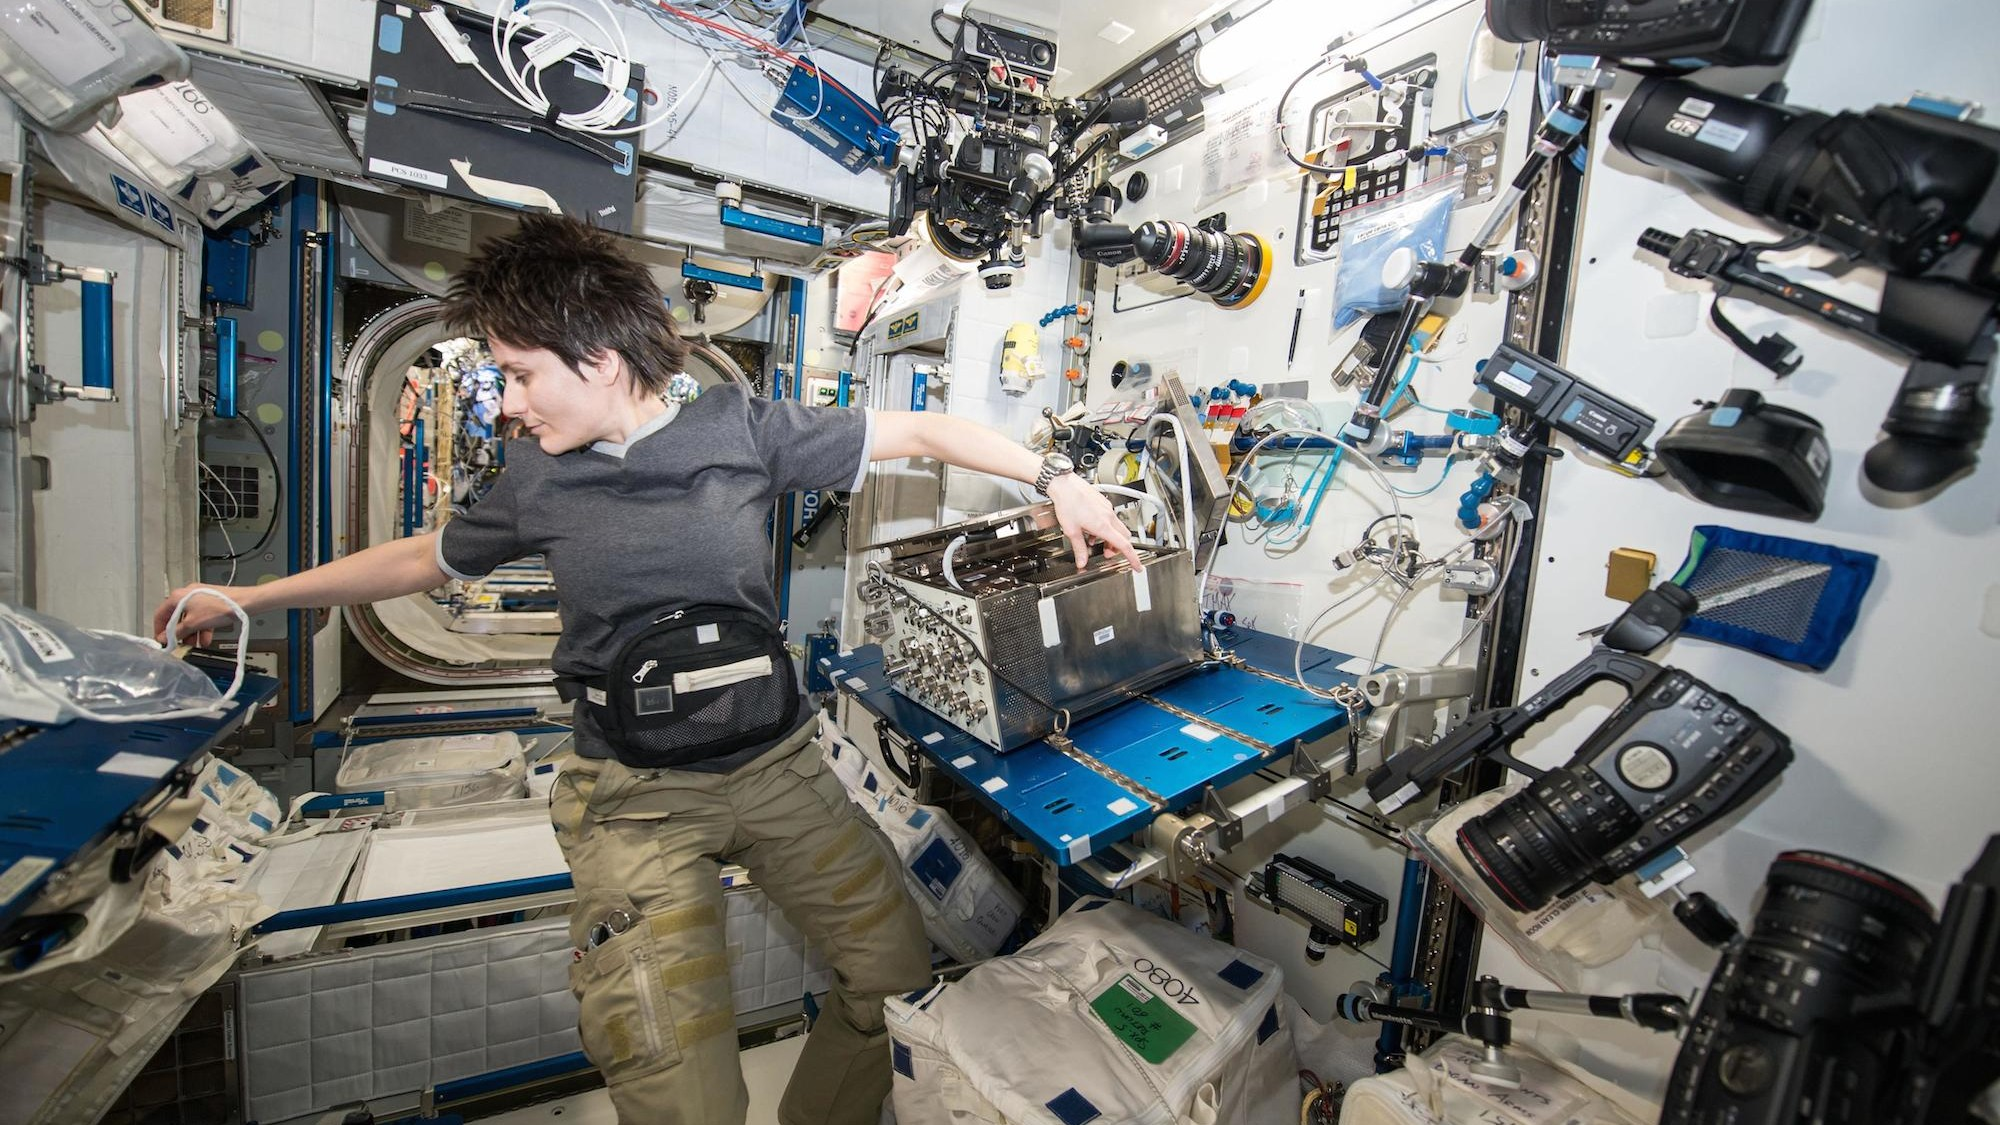 Take a 360 Degree Tour of the International Space Station